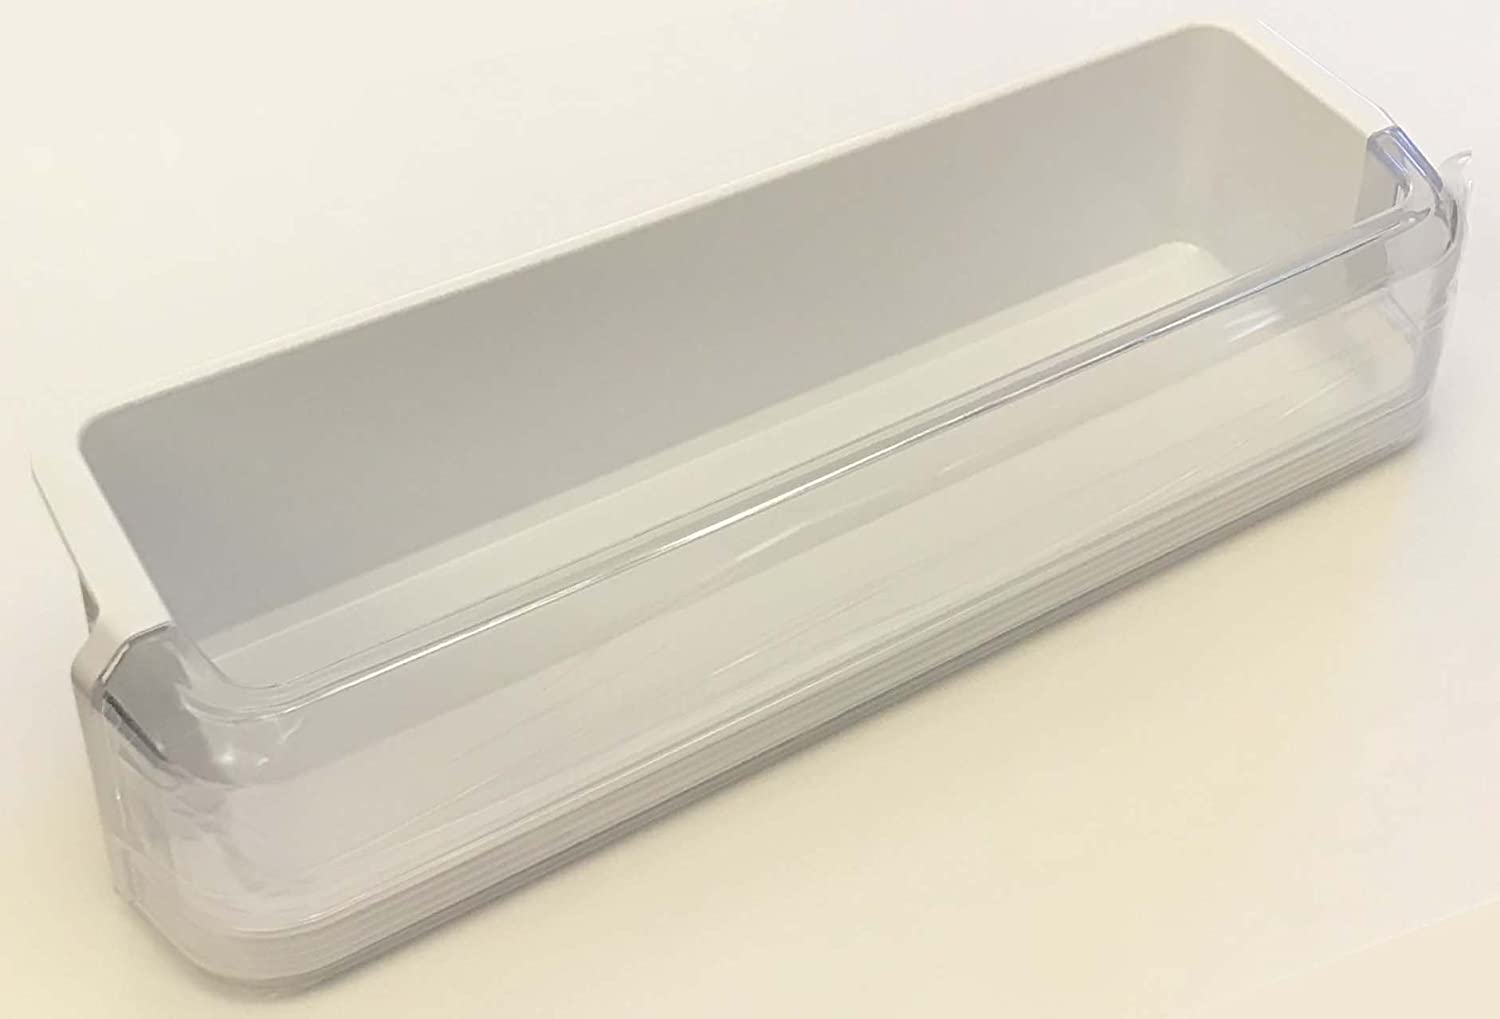 OEM Samsung Refrigerator Door Bin Basket Shelf Tray Assembly For Samsung RS22HDHPNBC, RS22HDHPNBC/AA, RS22HDHPNSR, RS22HDHPNSR/AA